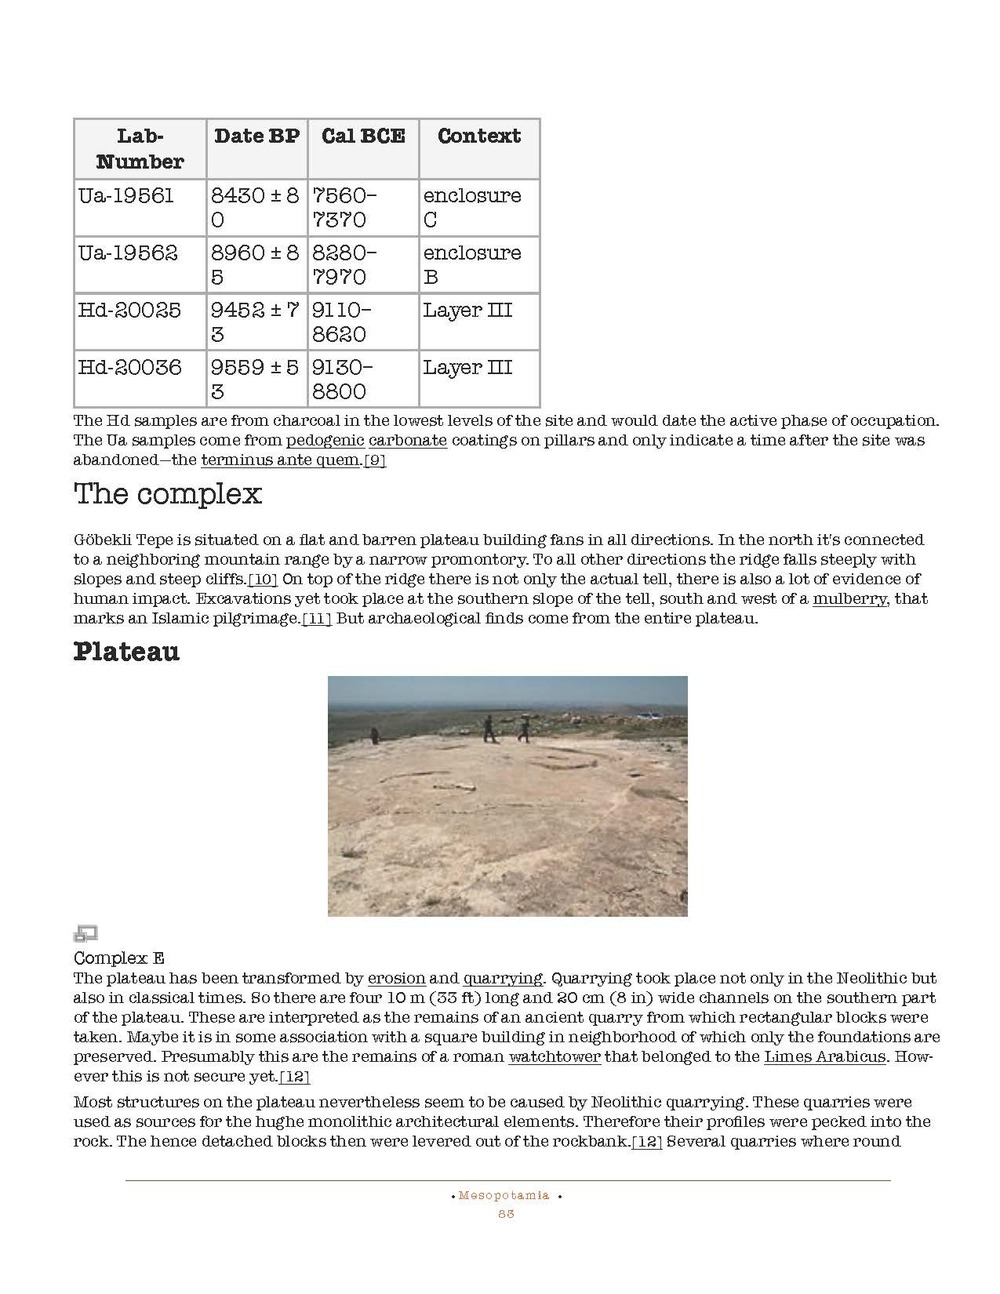 HOCE- Fertile Crescent Notes_Page_083.jpg